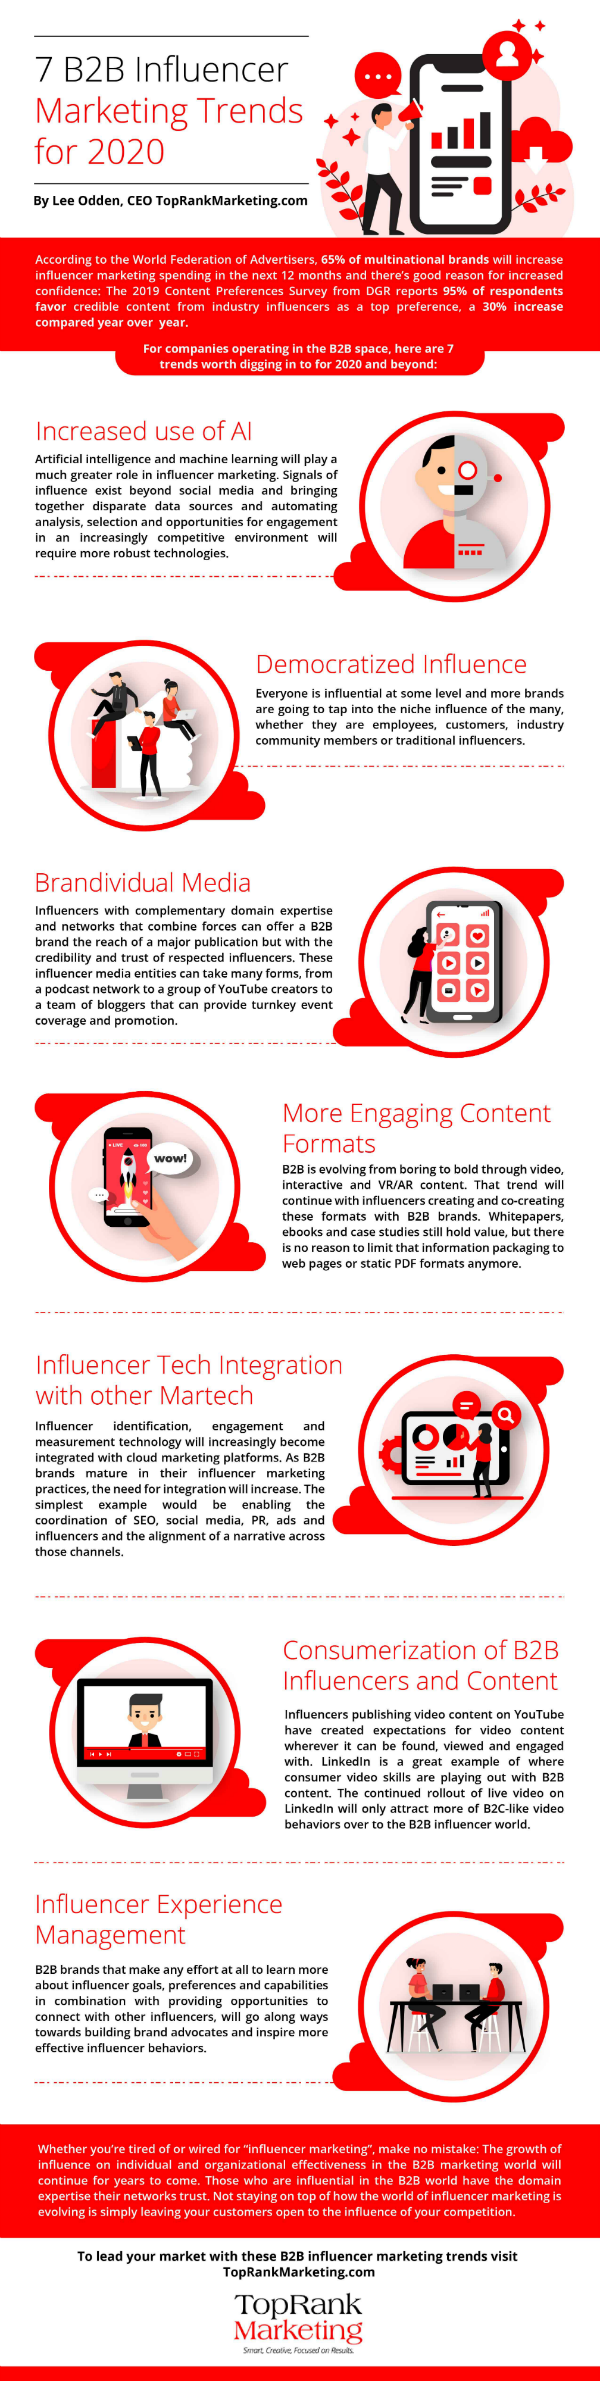 b2b-influencer-marketing-trends-2020.png